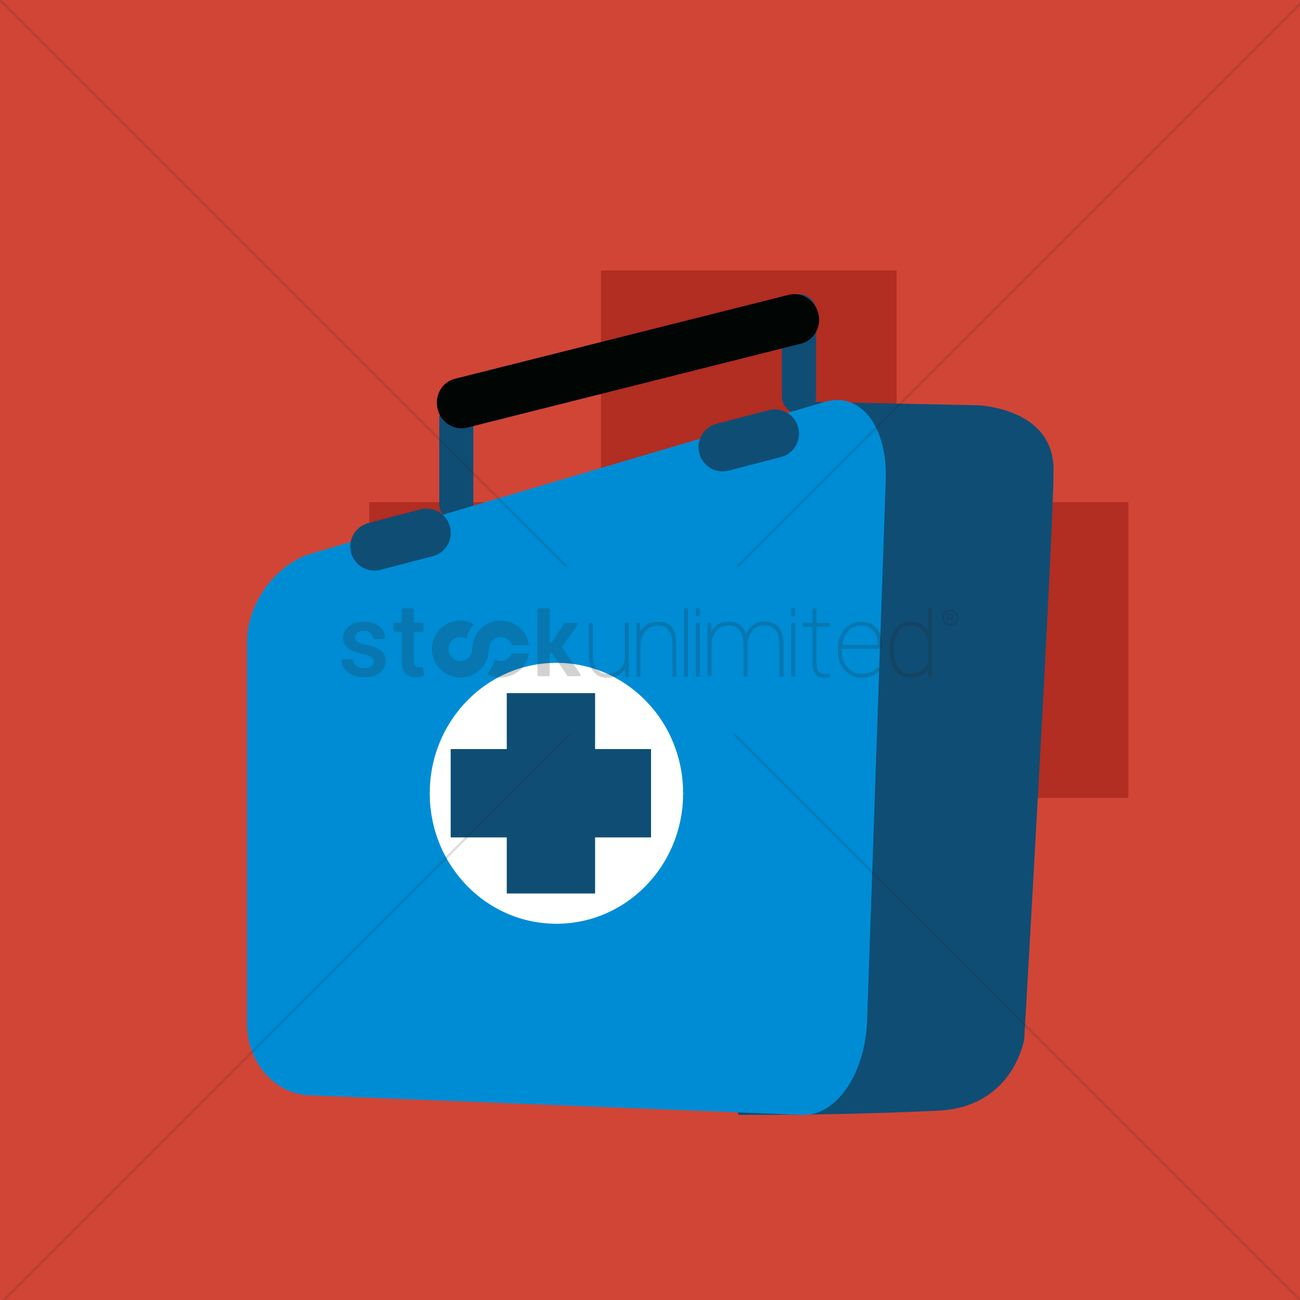 Free First aid kit Vector Image - 1271210 | StockUnlimited